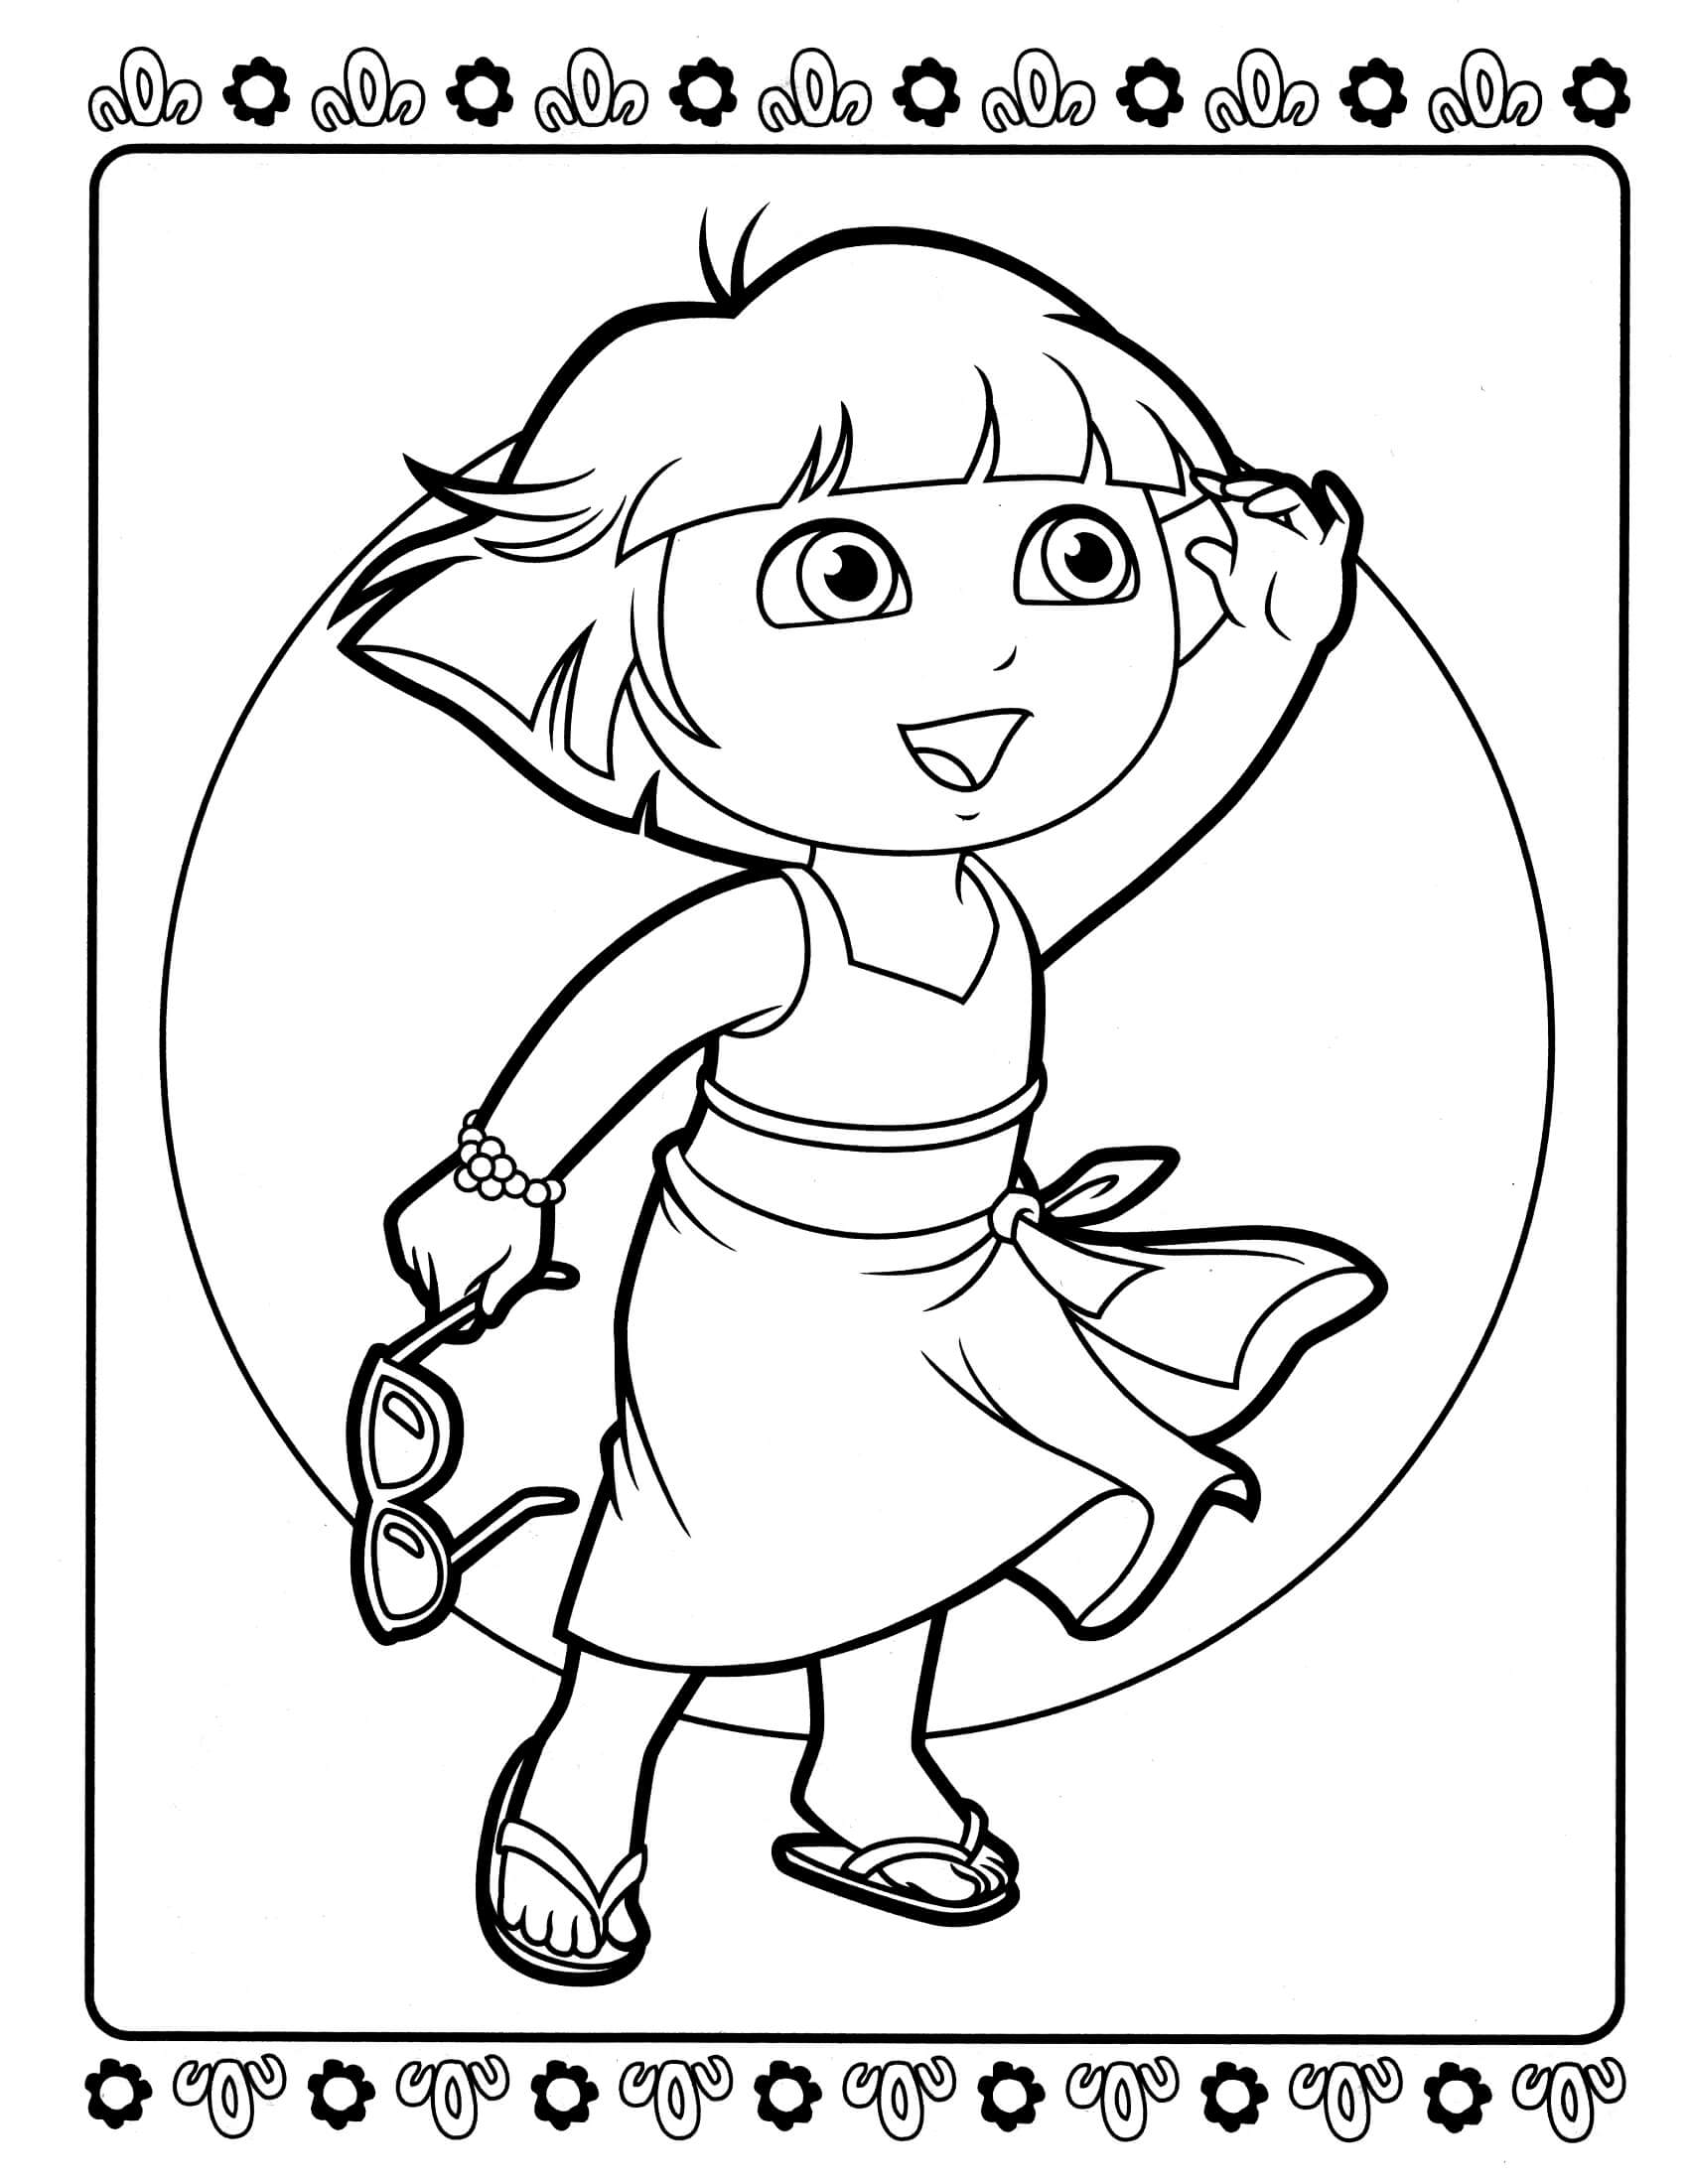 dora coloring picture print download dora coloring pages to learn new things dora picture coloring